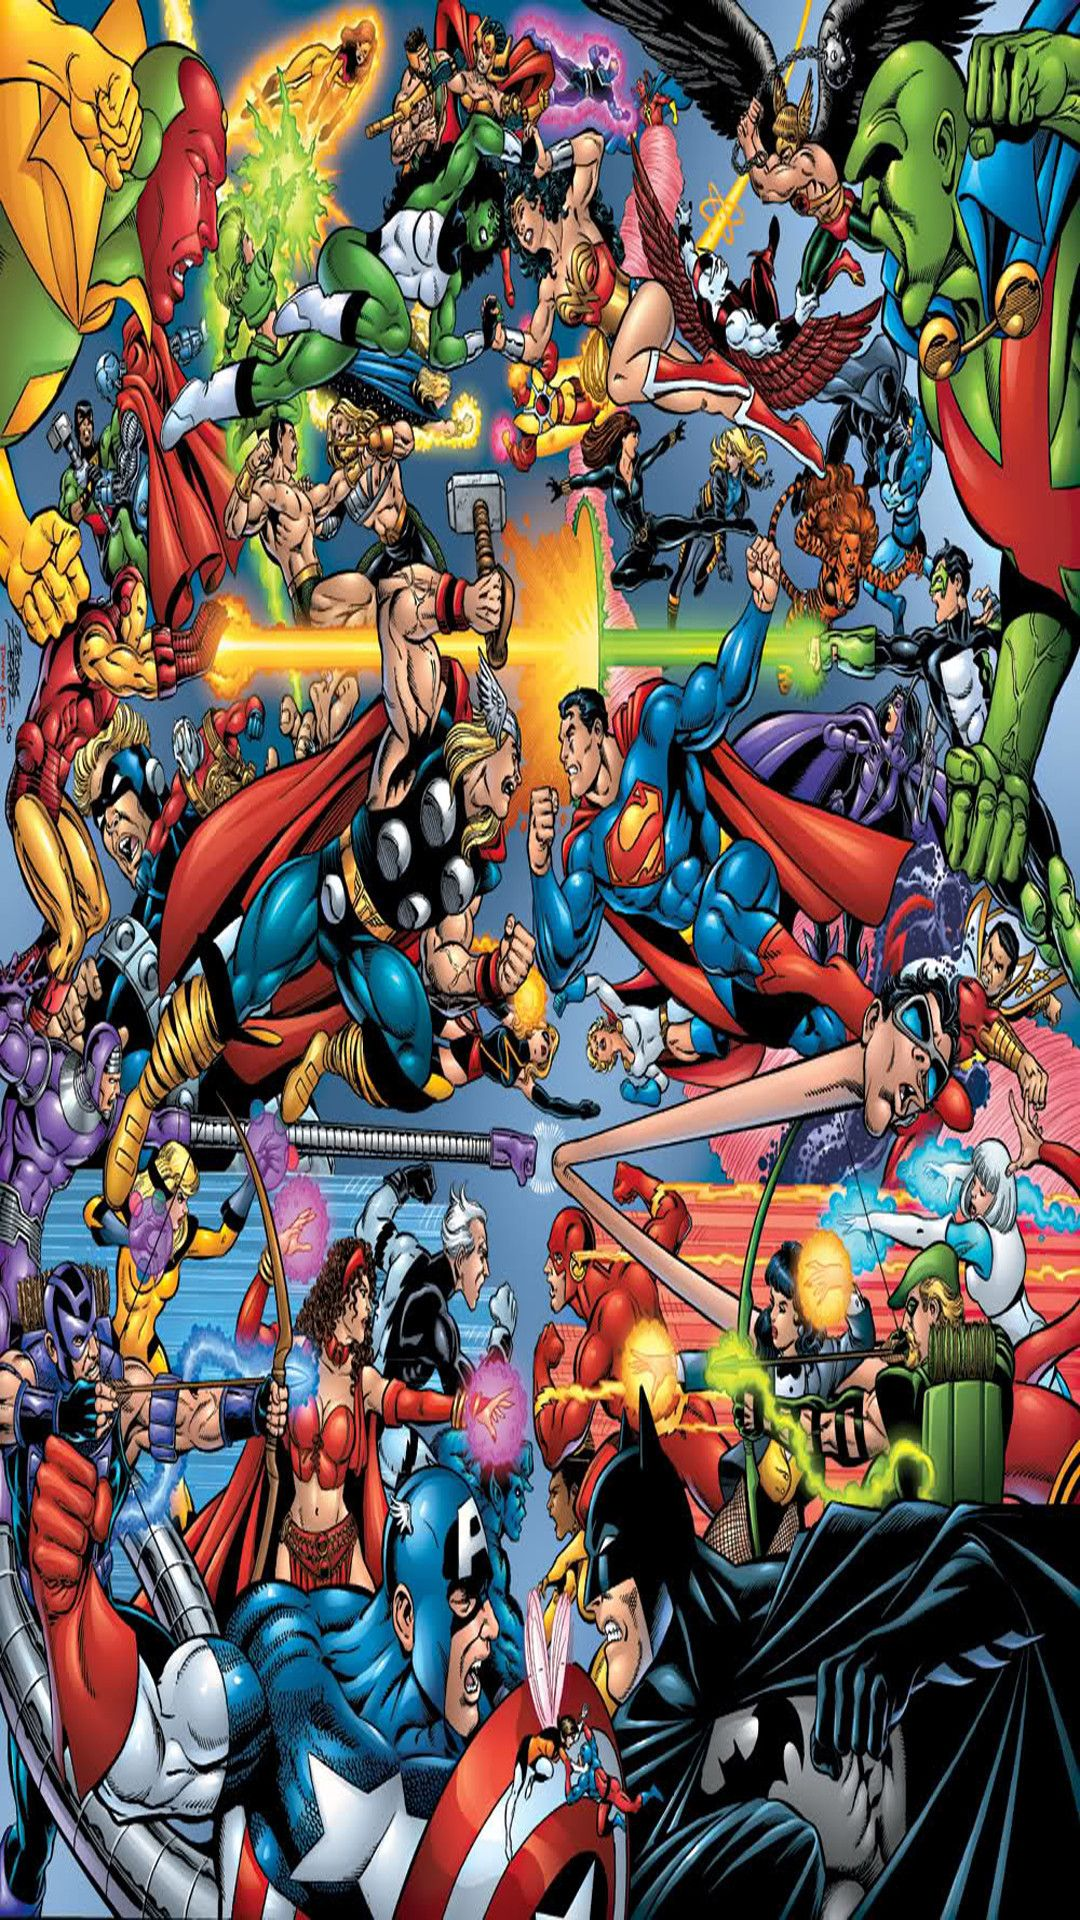 For 10 windows marvel dcwallpapers wallpapers top free for 10 windows marvel dcwallpapers - Marvel and dc wallpapers ...